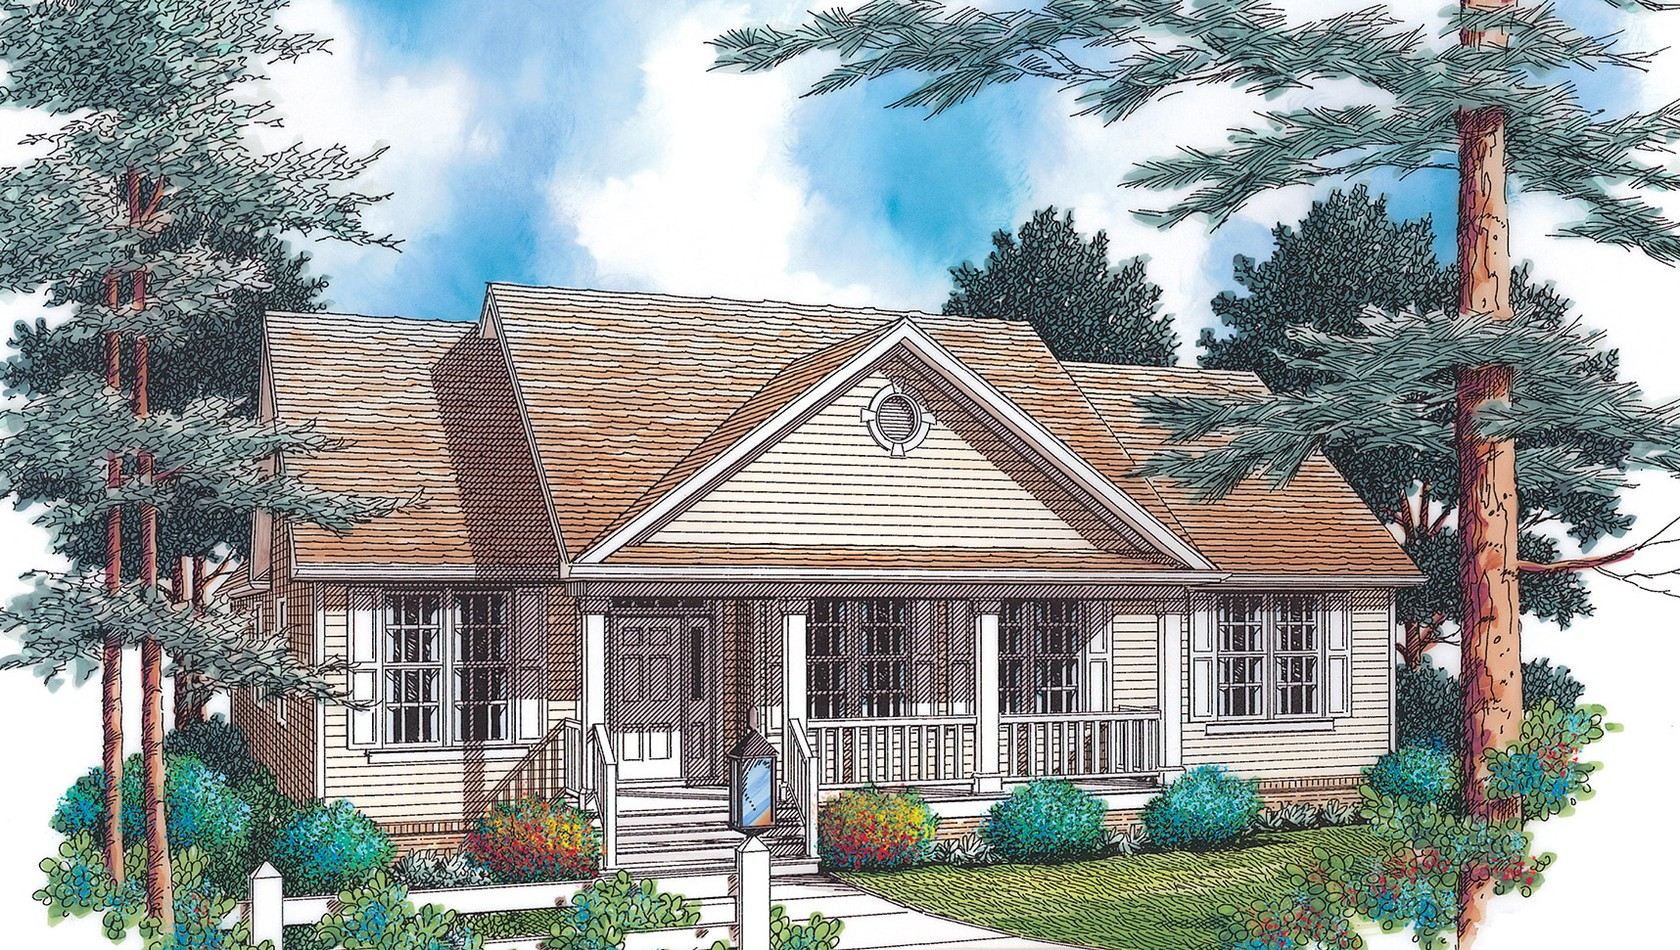 Mascord House Plan 1142: The Southwood